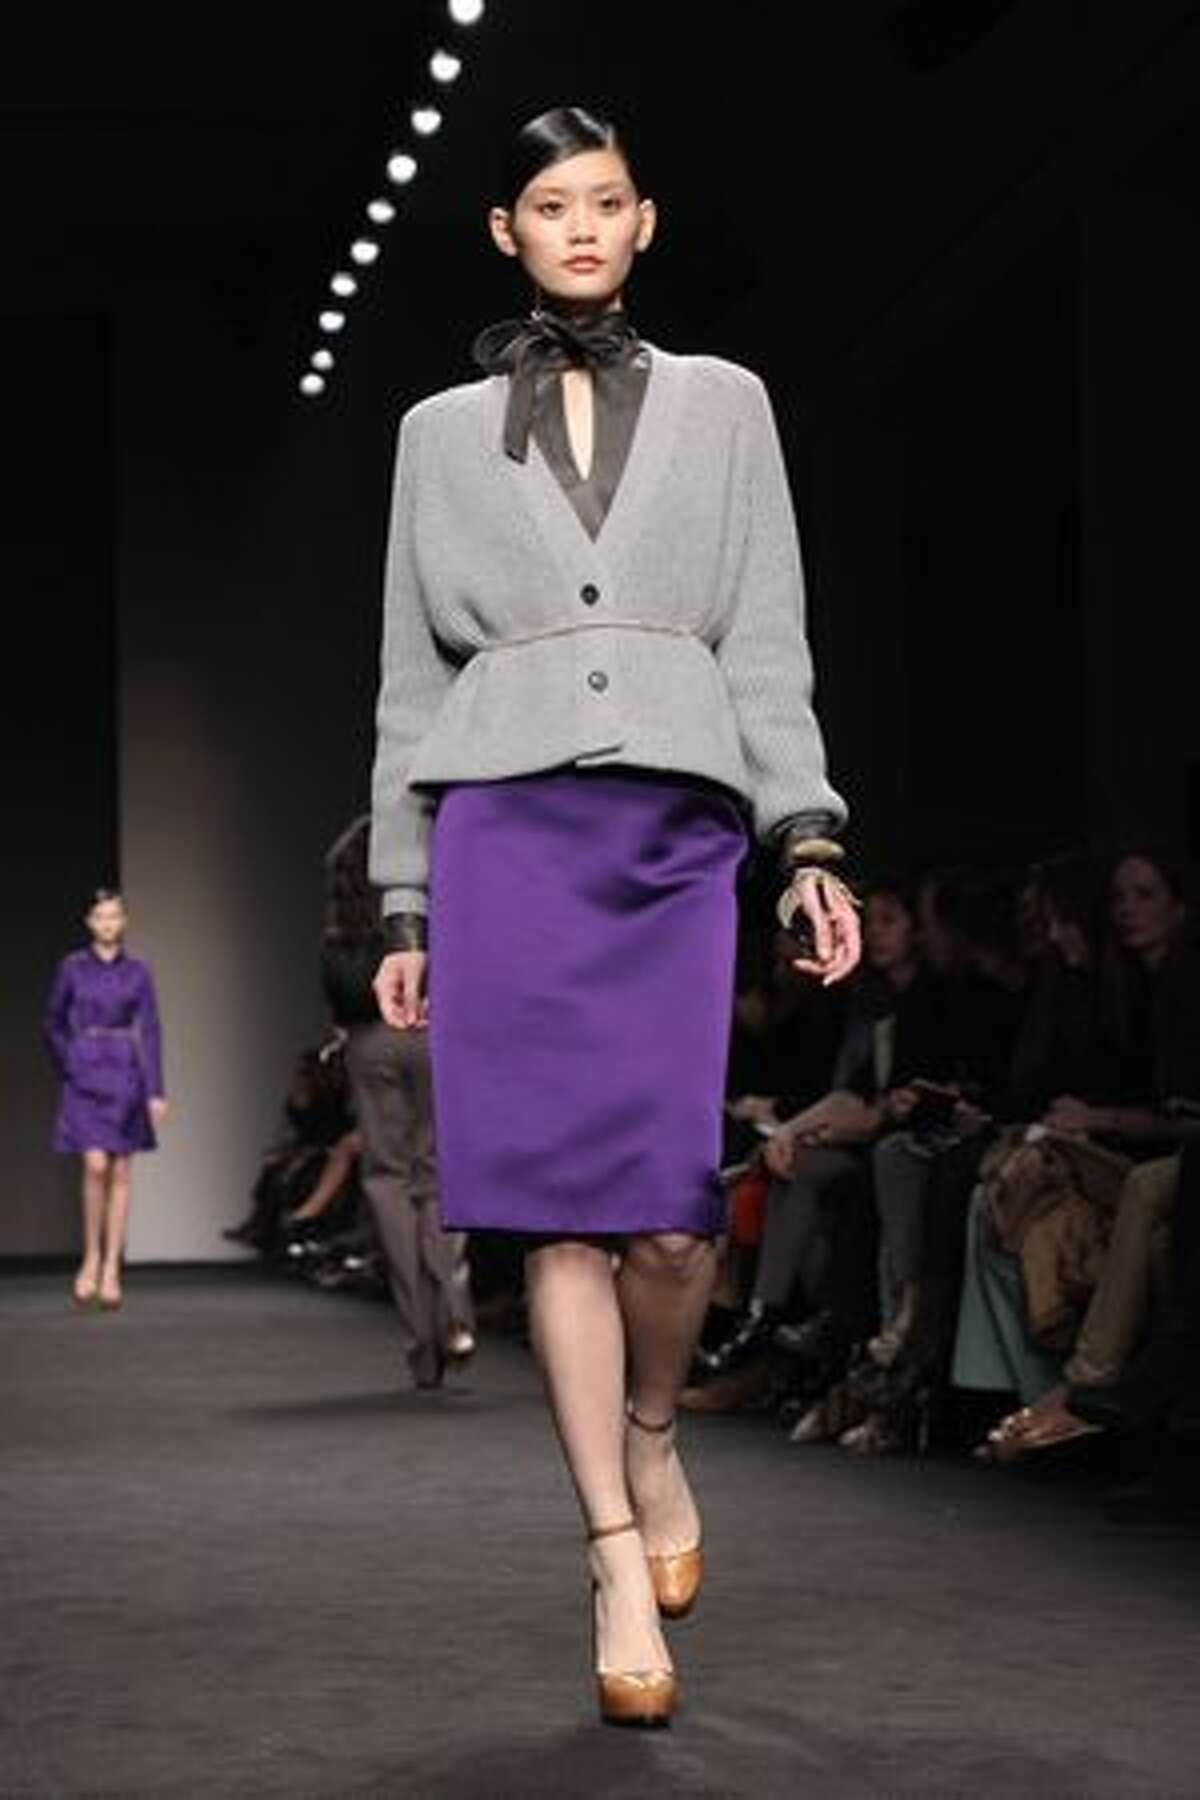 A model walks the runway during the Brioni fashion show.